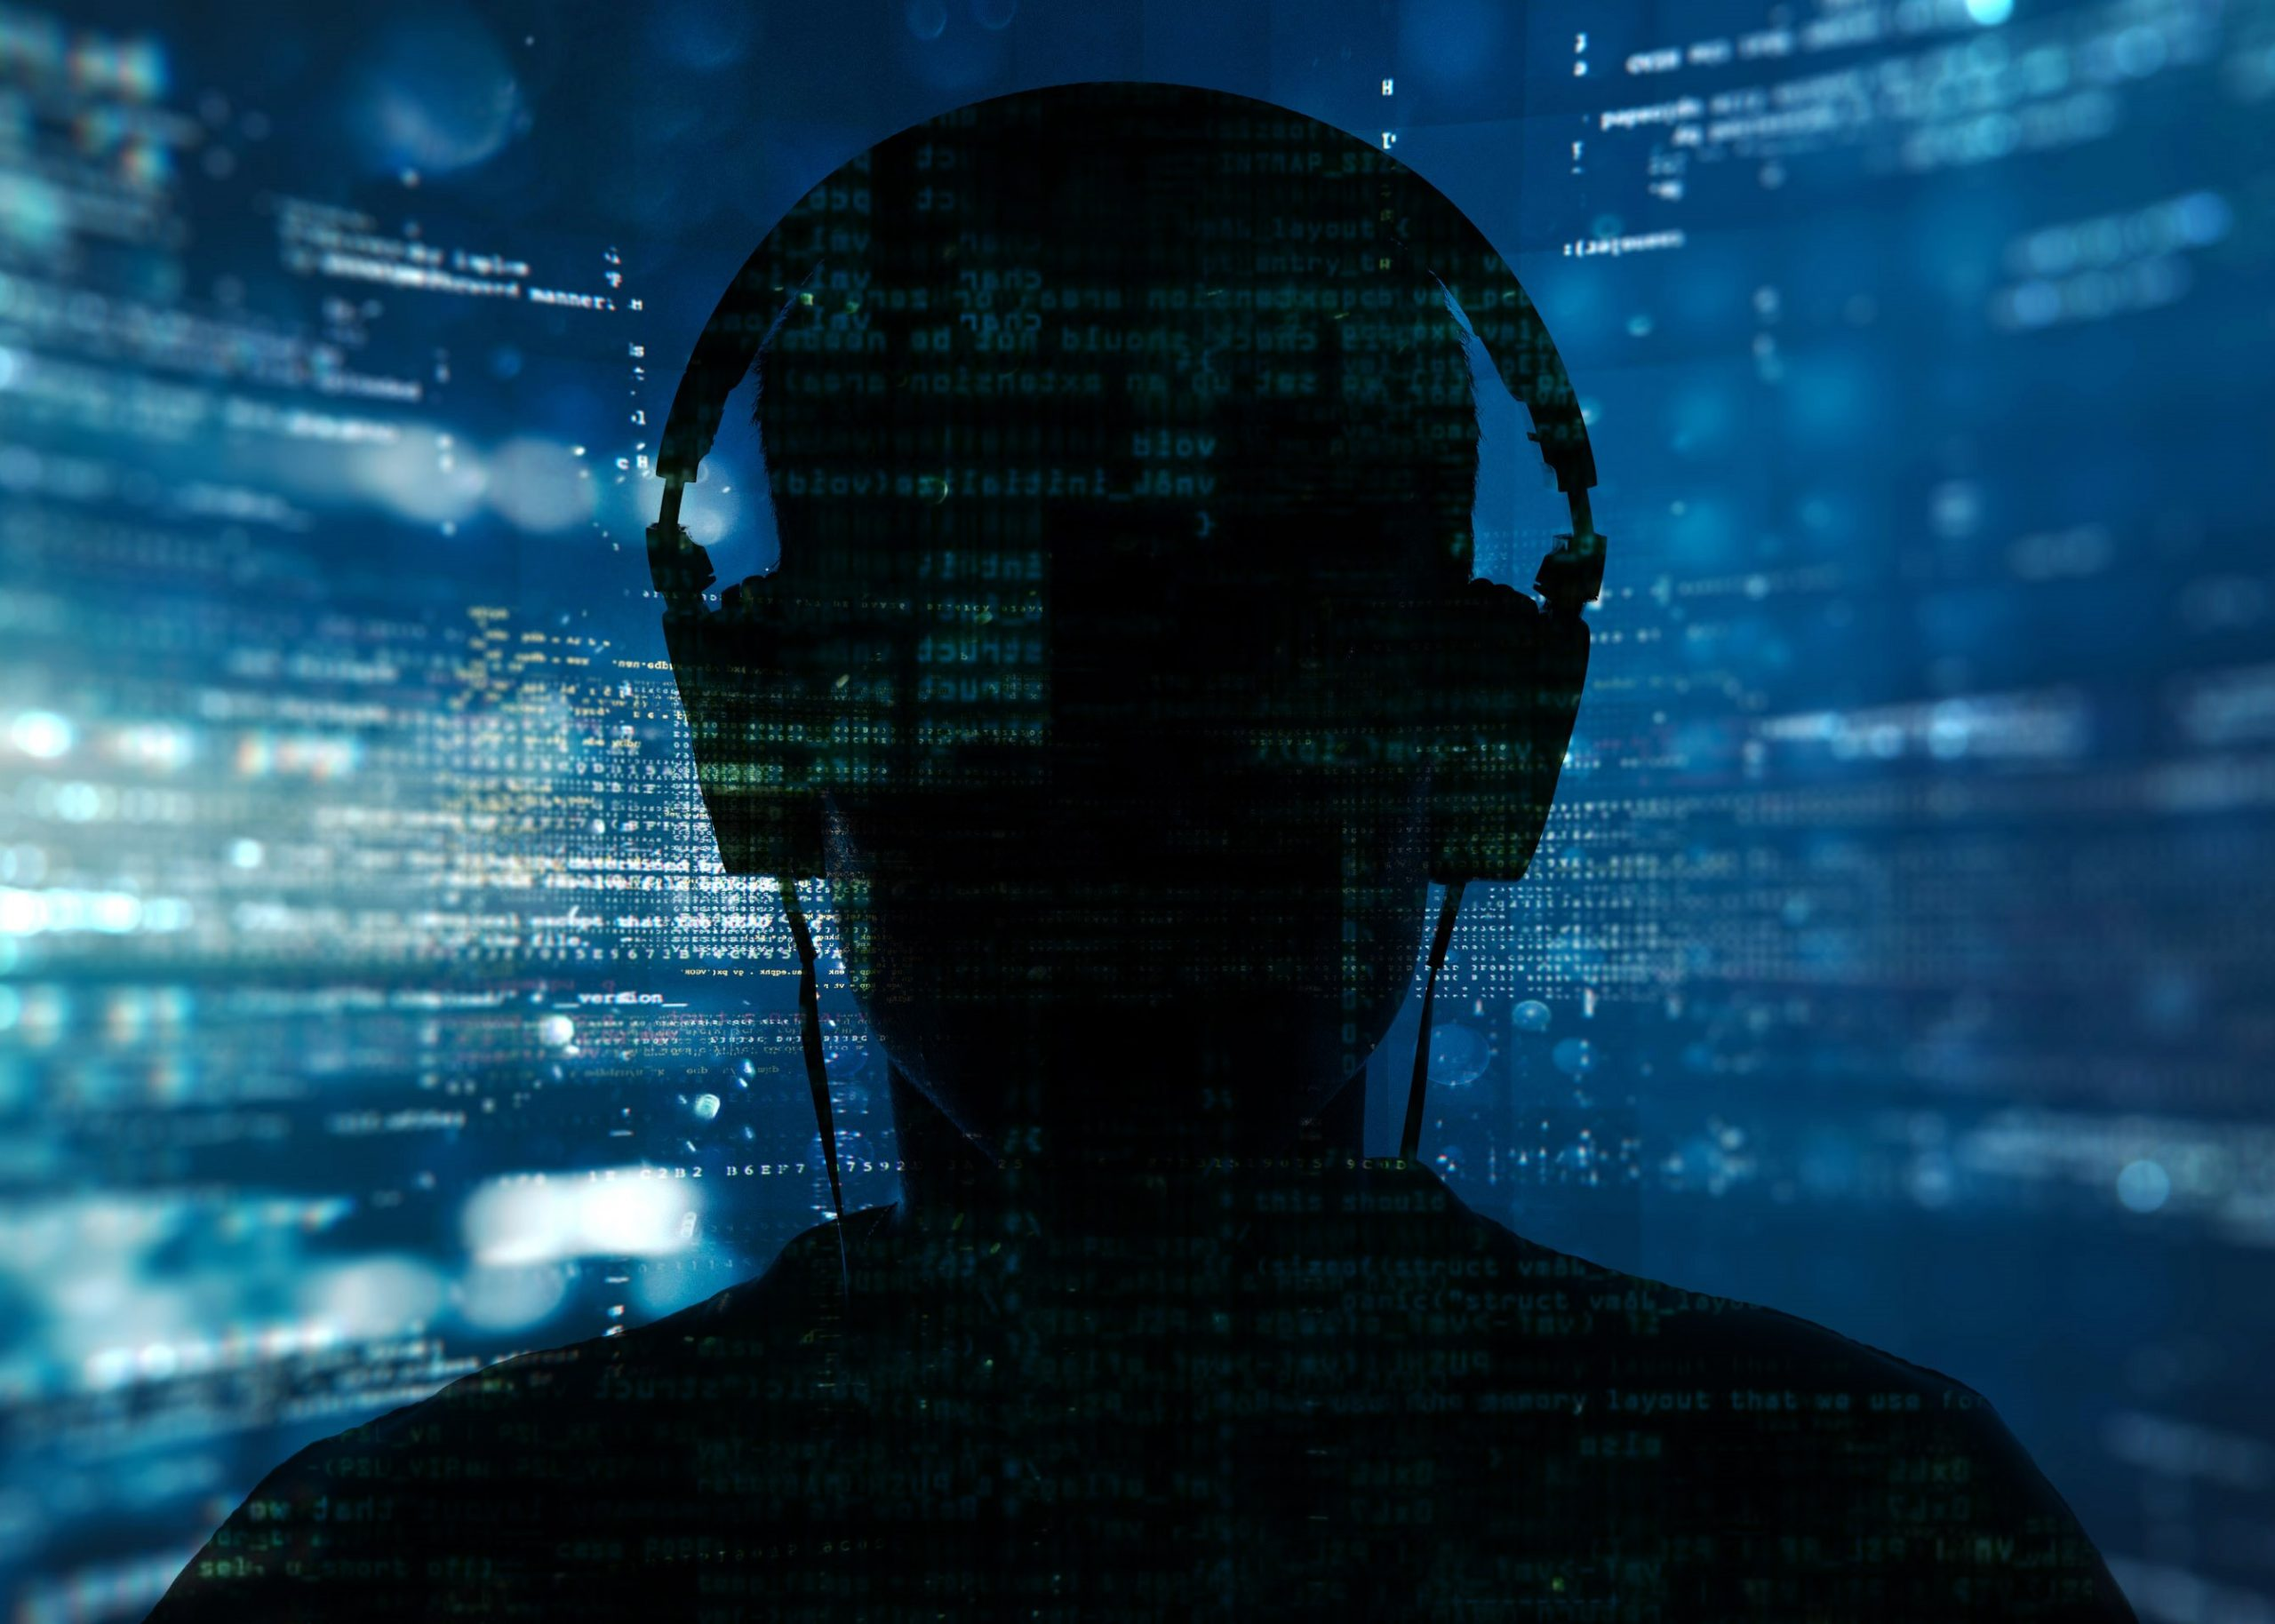 Researchers call for a determined path to cybersecurity